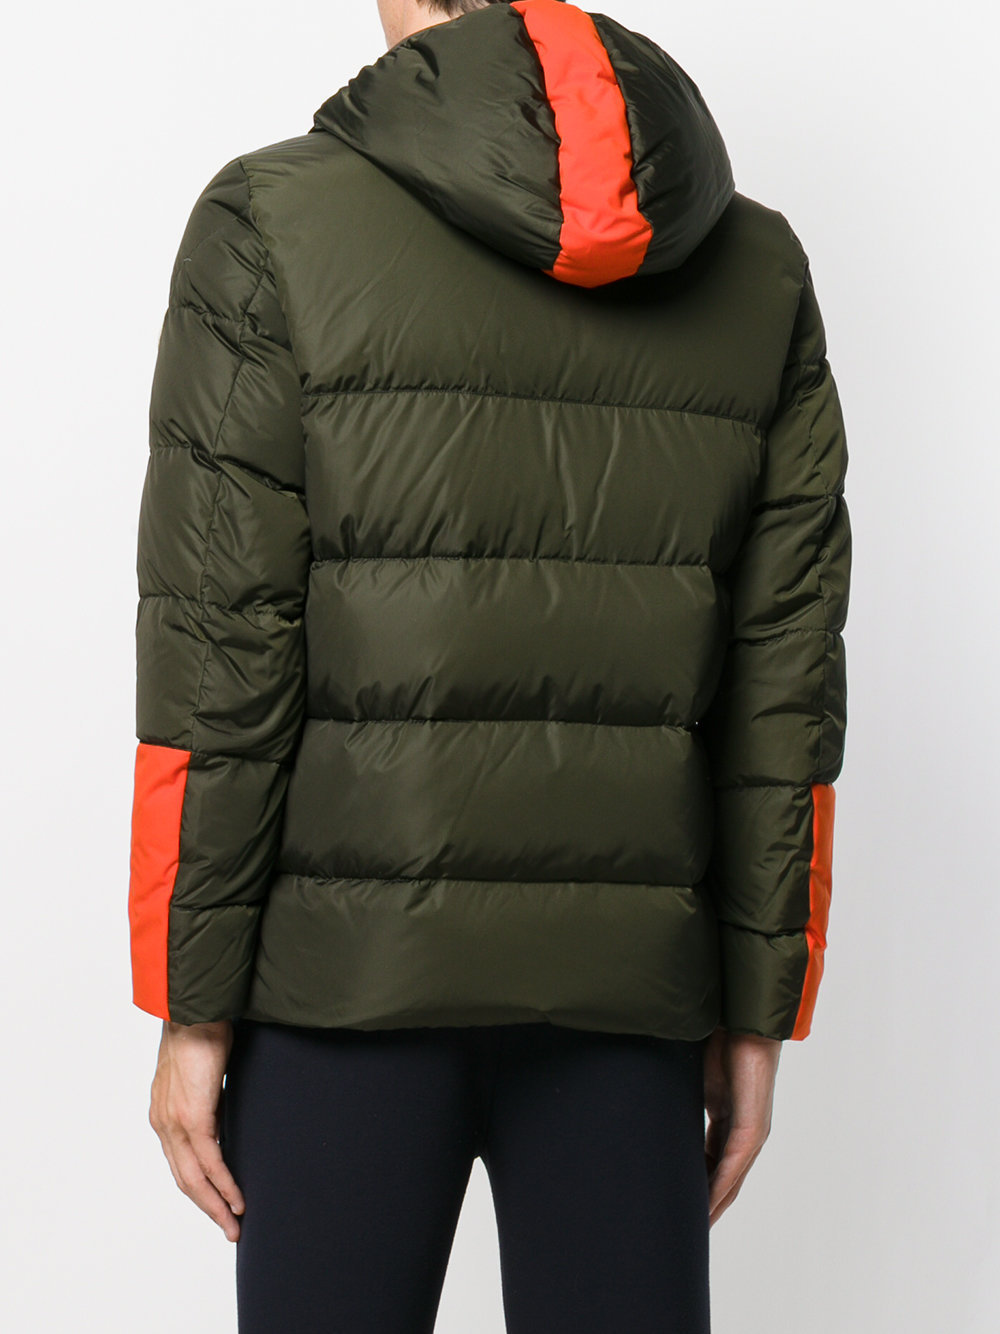 MONCLER 17AW 新作 大人格好良いデザインで注目の的!ミリタリー